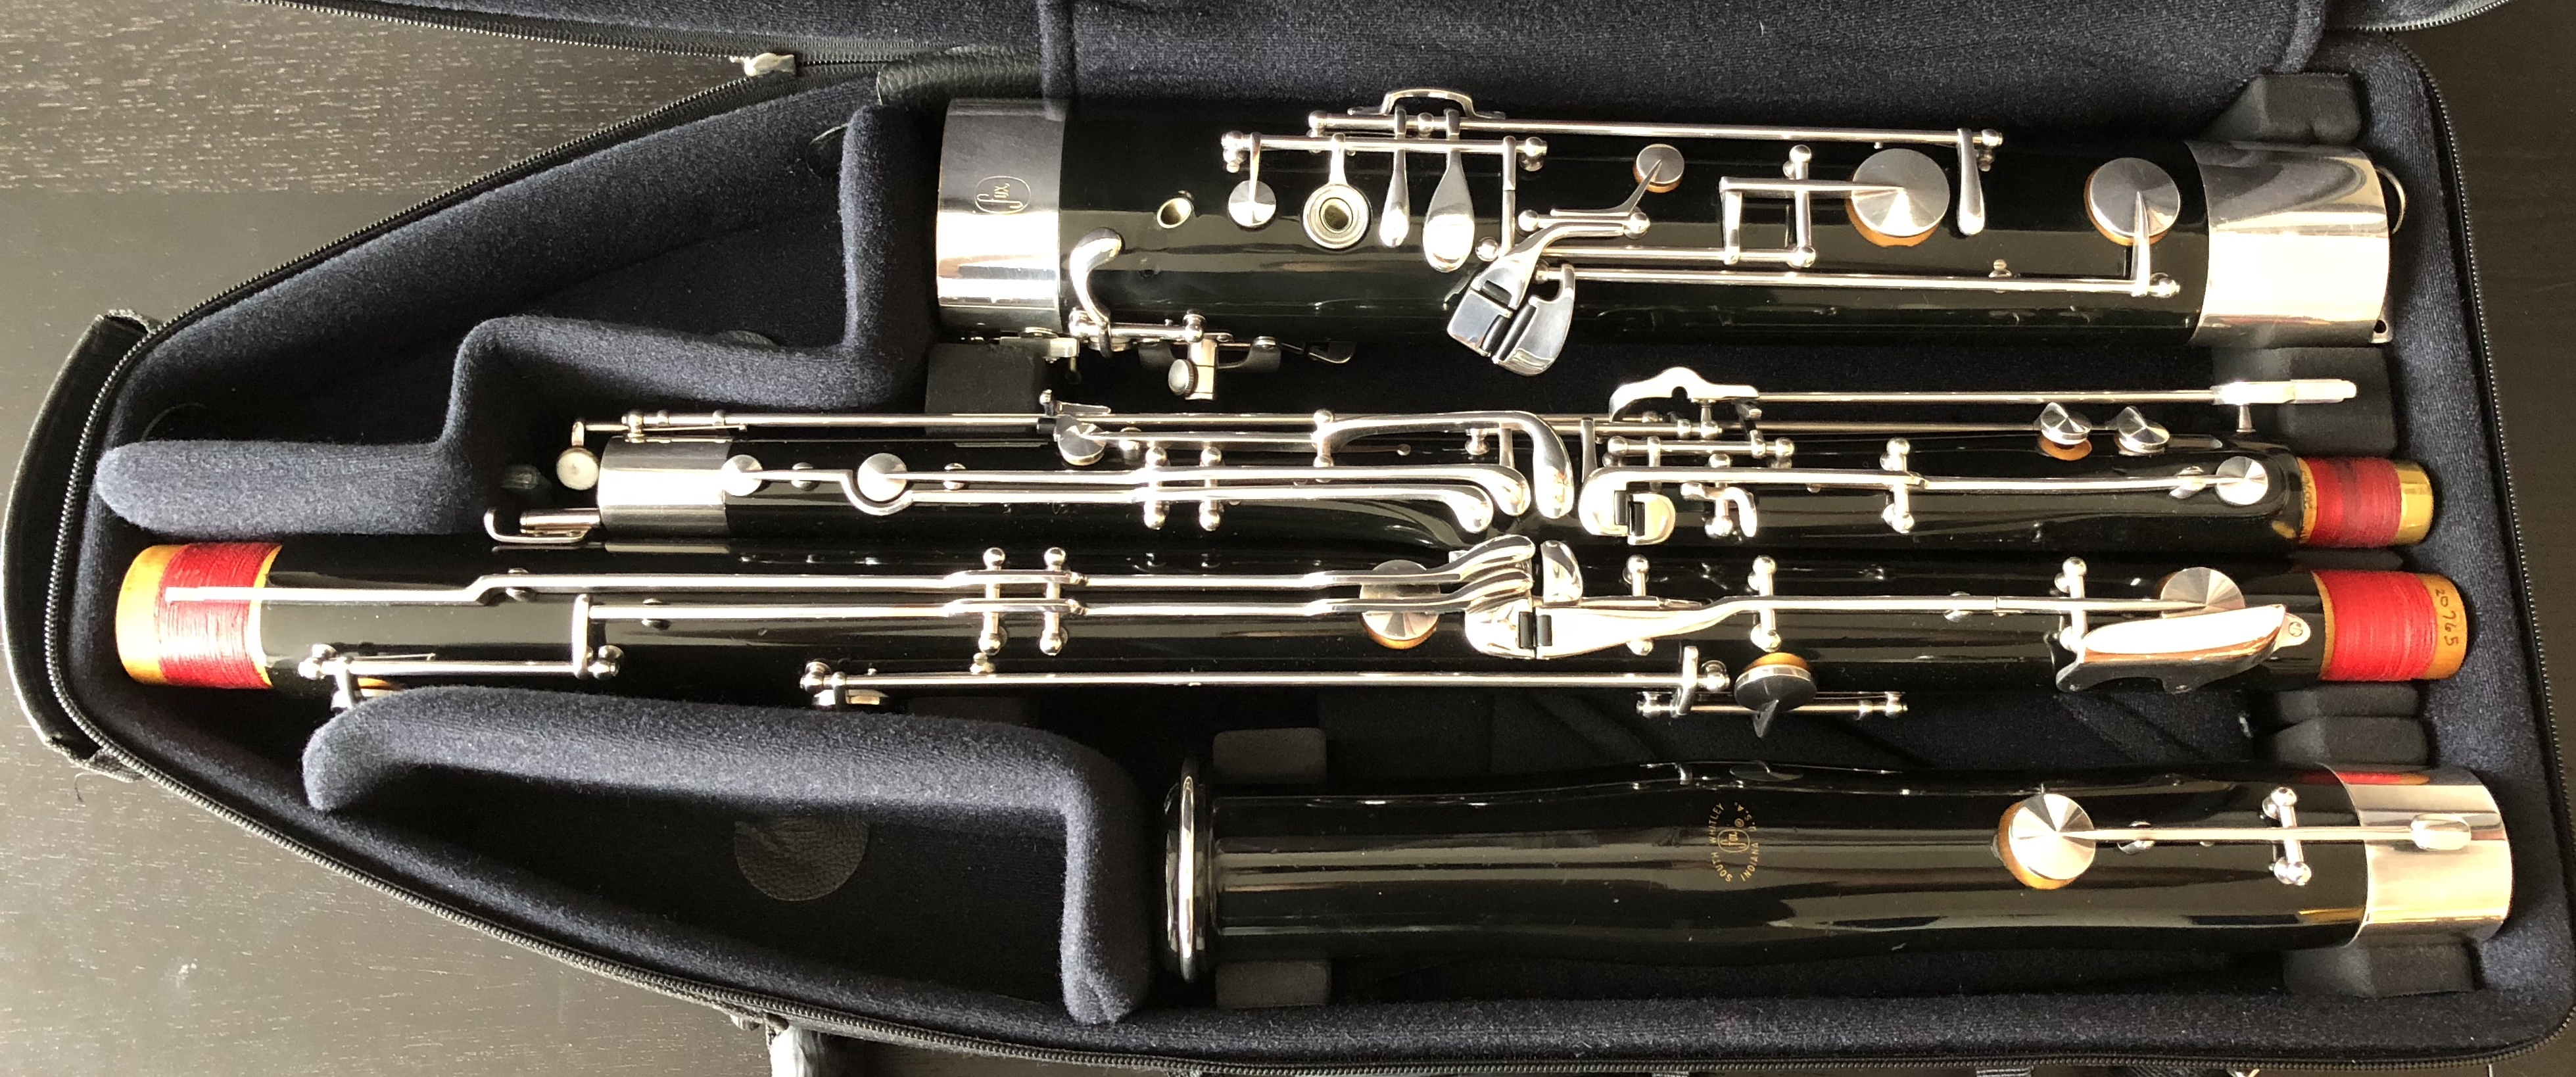 Pre-Owned Bassoons - iNNOLEDY